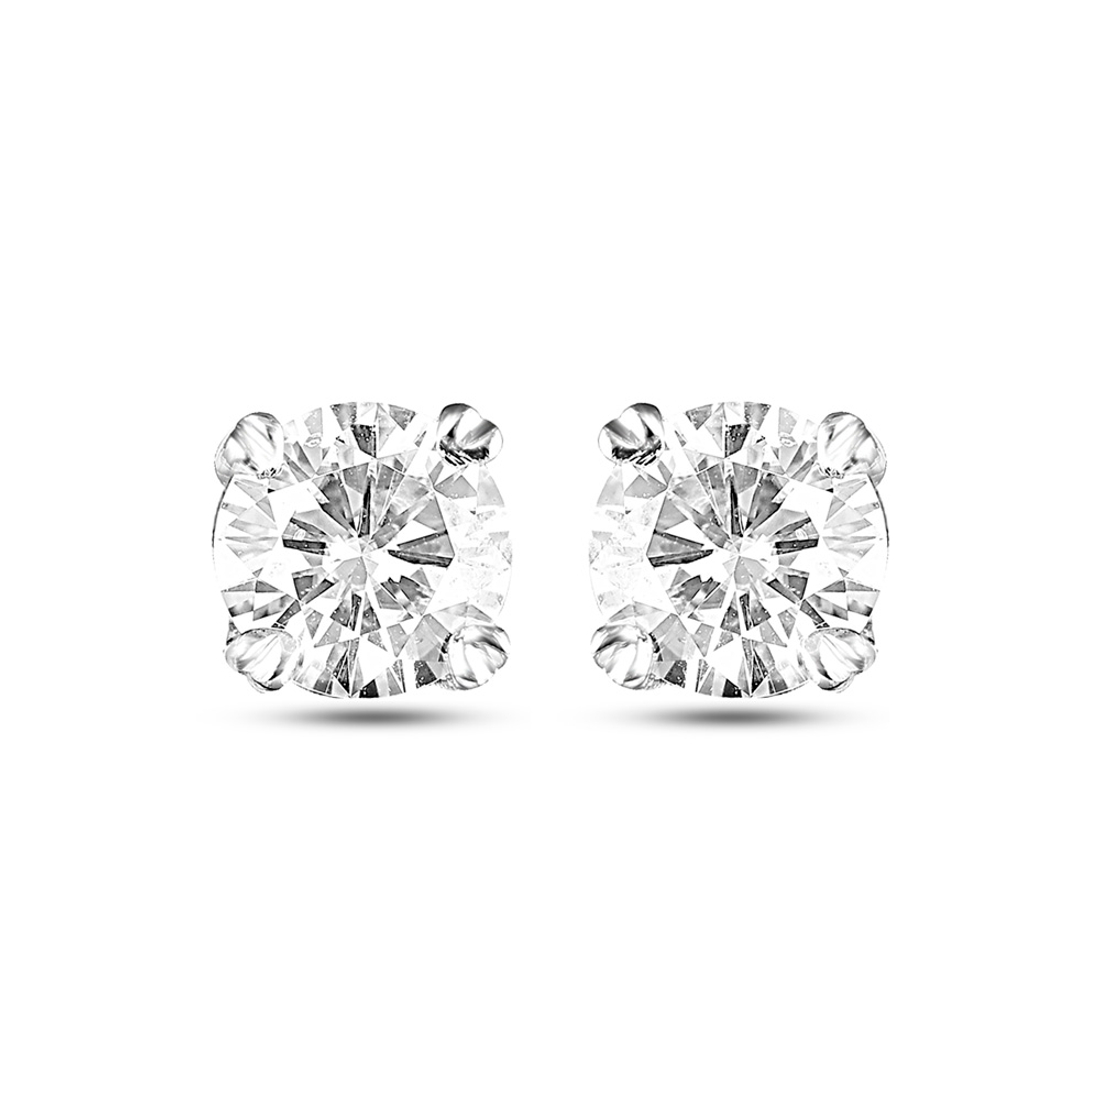 Forever Brilliant Round 5.0mm Moissanite Earrings weighted 0.80ct (from Charles and Colvard) made in Silver.